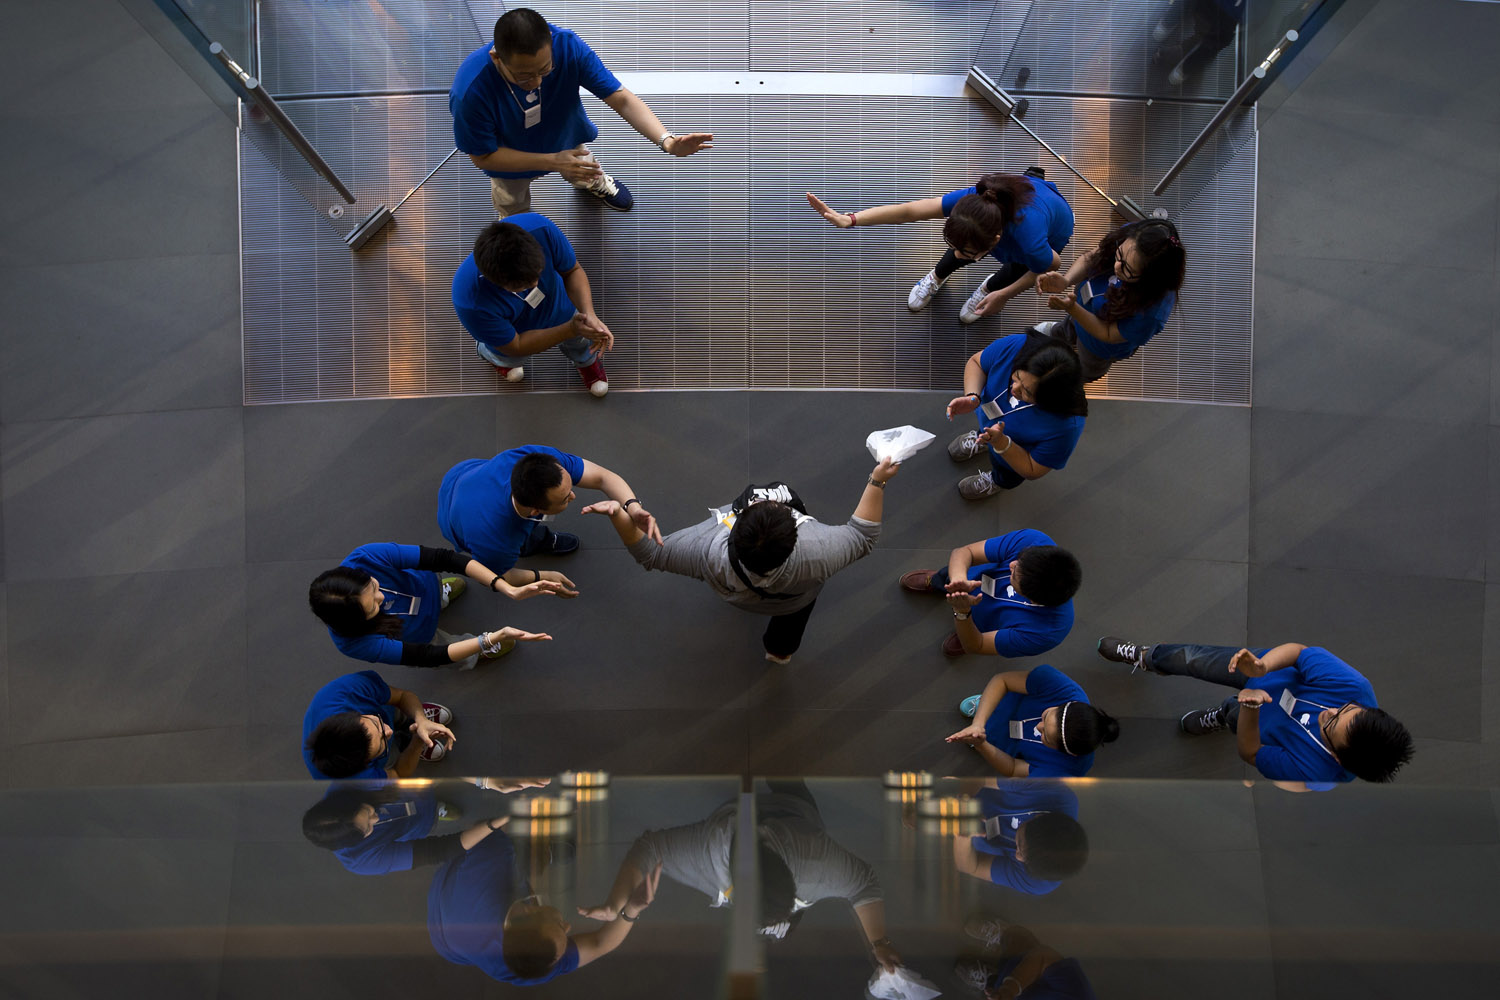 Sept. 20, 2013. Chinese employees cheer a customer after he bought a new iPhone at an Apple store in the Wangfujing shopping district in Beijing.